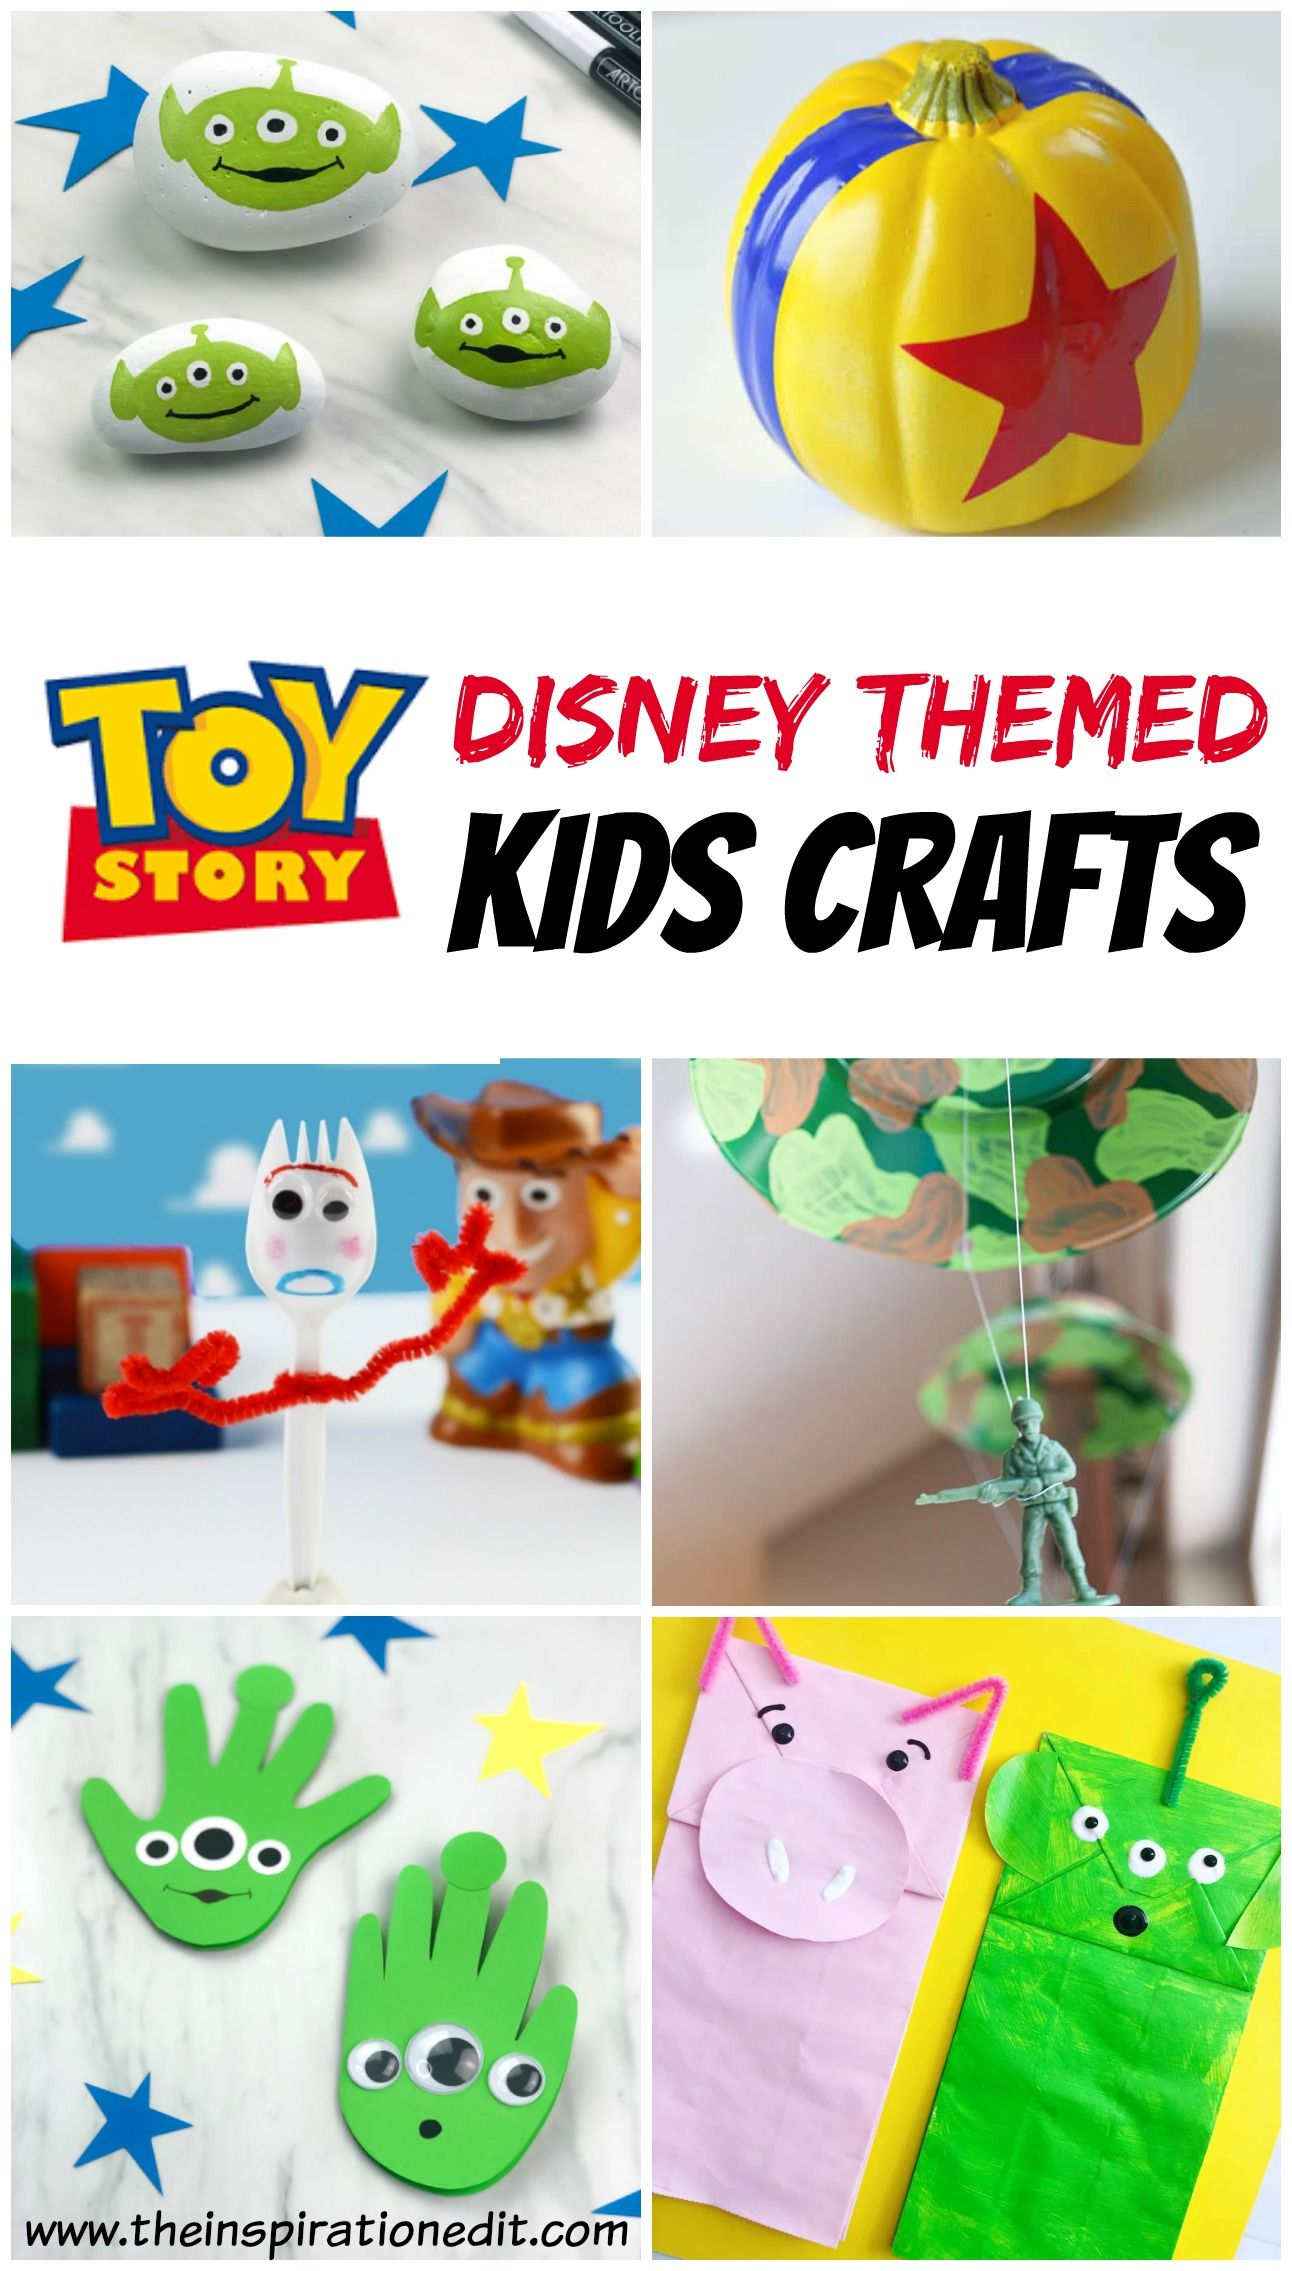 Toy Story Craft Ideas For Kids · The Inspiration Edit